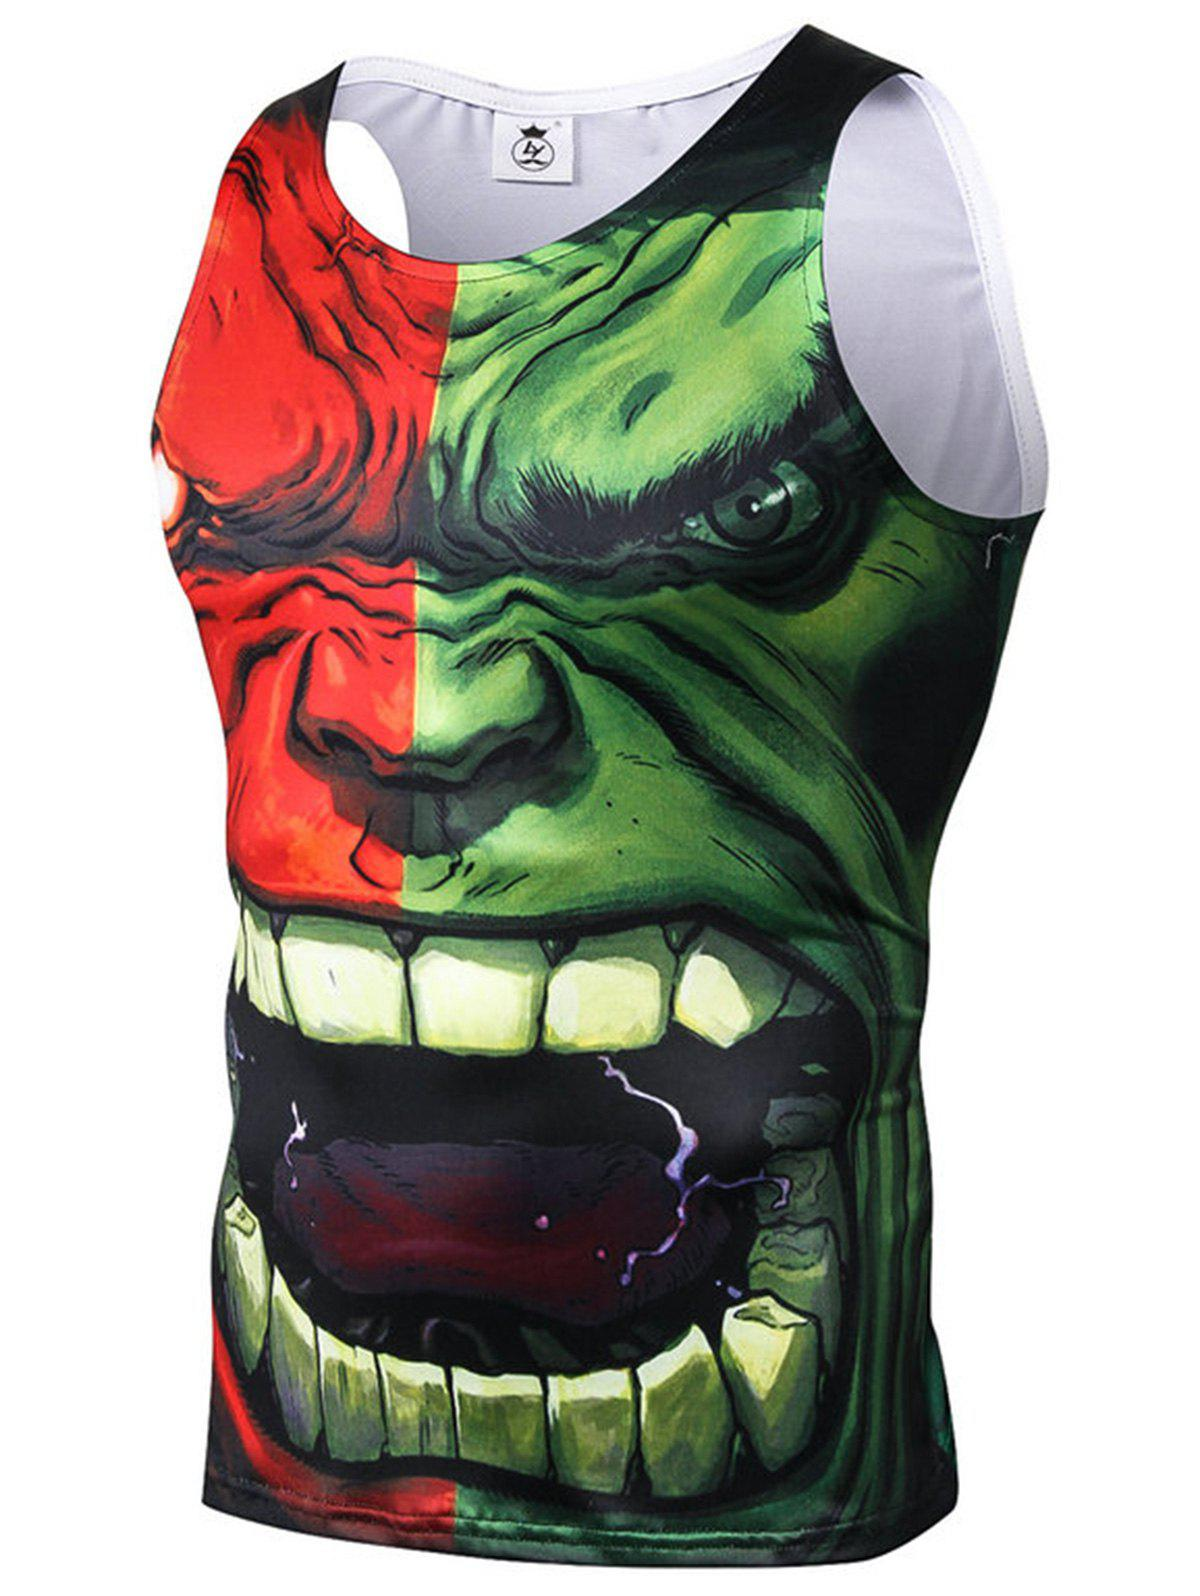 Affordable 3D Character Print Stretchy Tank Top